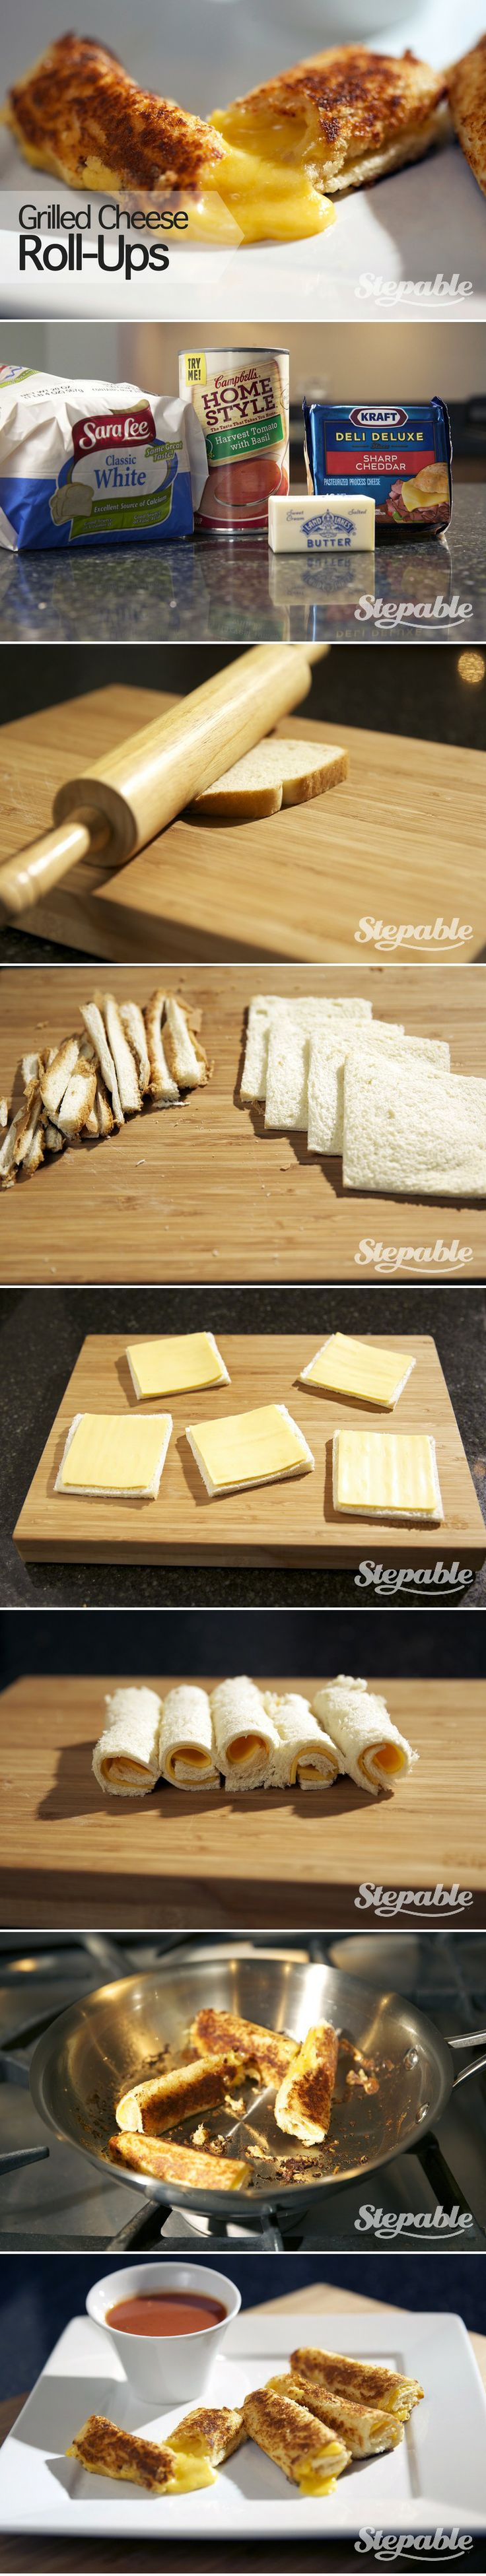 Grilled Cheese Roll-Ups ..finger comfort Good..OK!